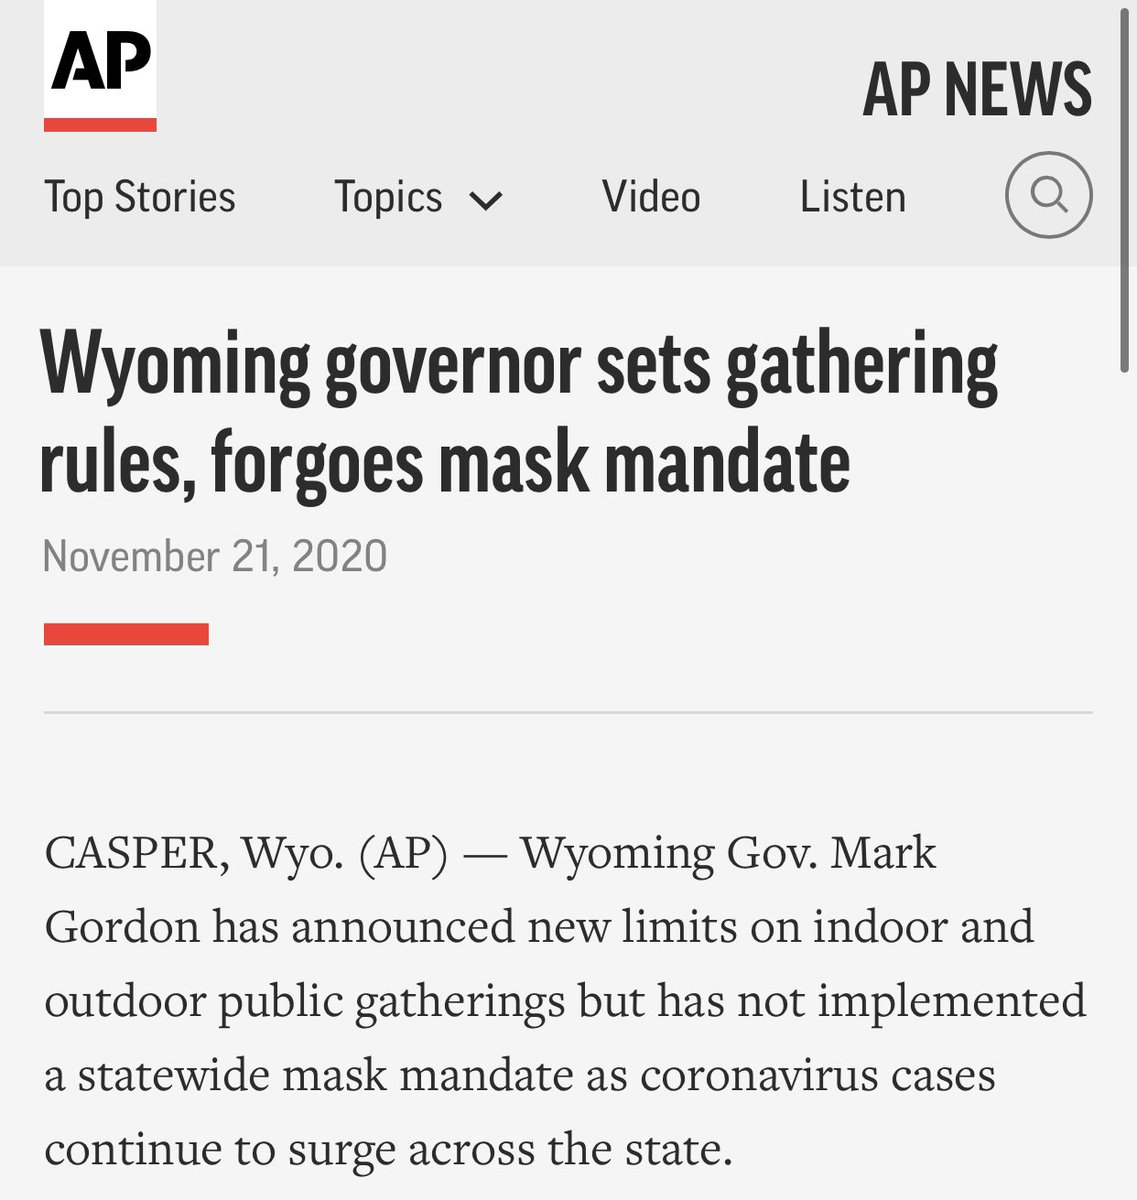 BREAKING—Wyoming Governor Mark Gordon tests positive for #COVID19. ➡️ 4 days ago: Same governor forgoes mask mandate. apnews.com/article/wyomin…